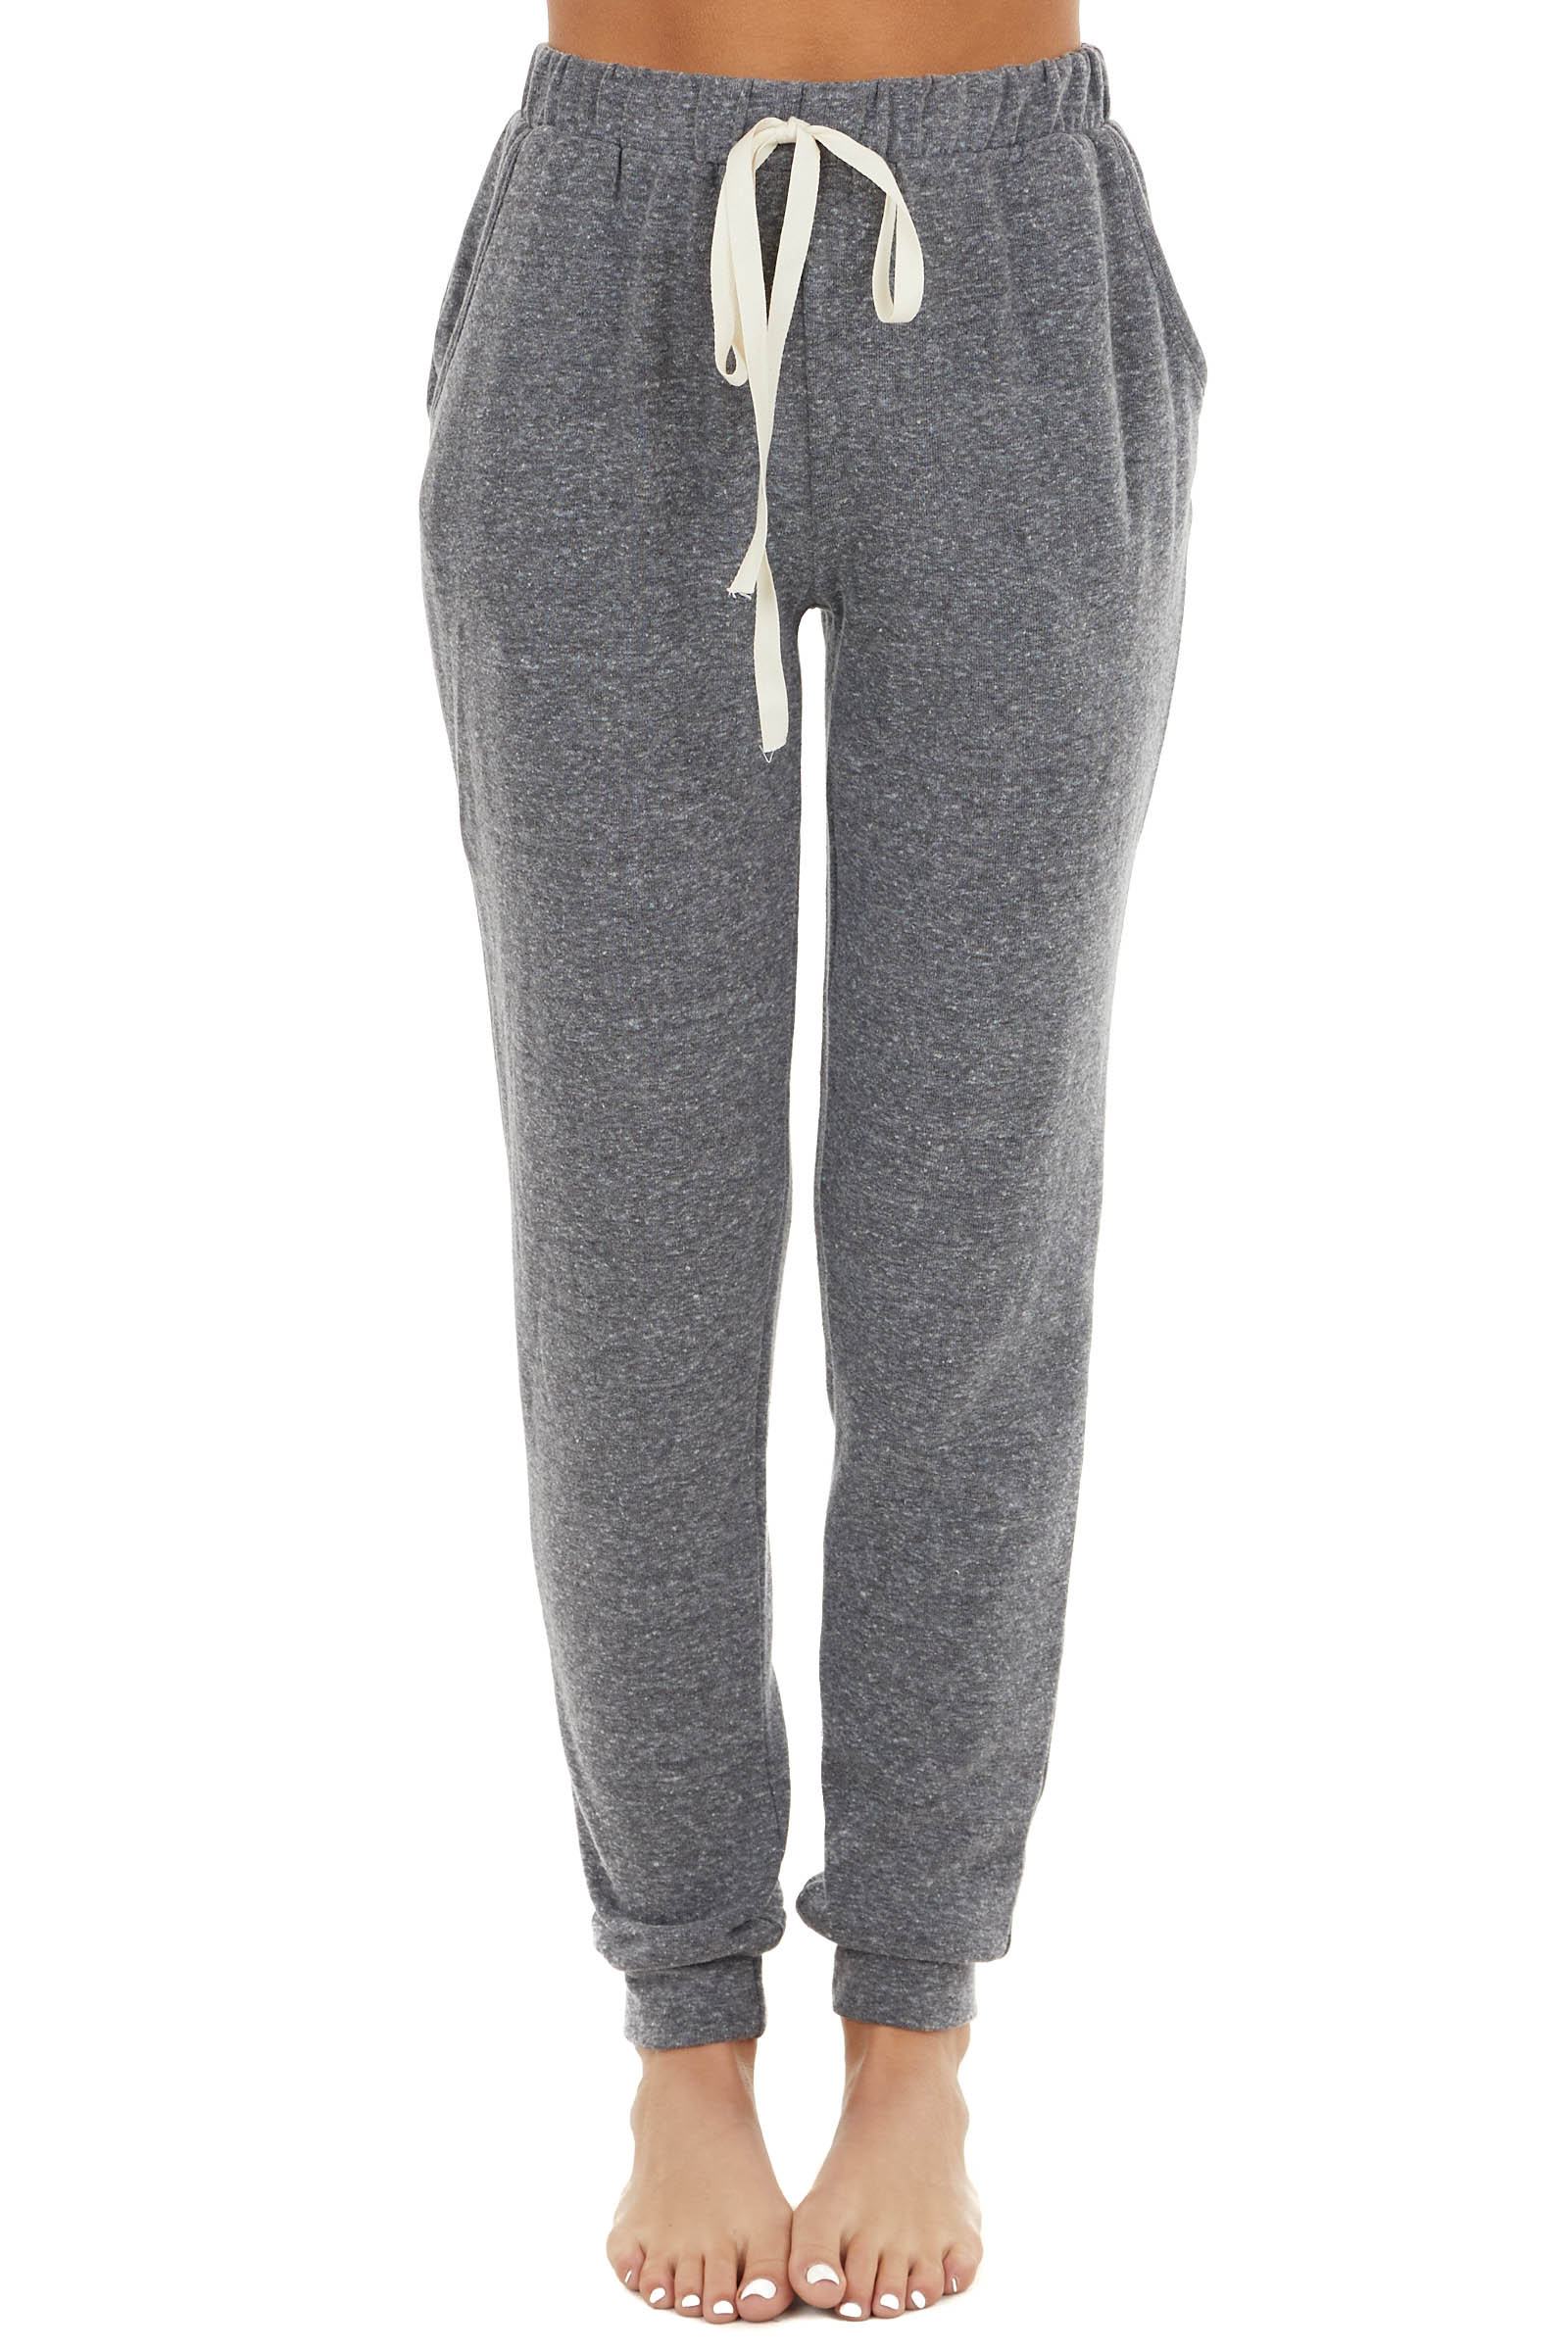 Heathered Stone Fleece Lined Drawstring Joggers with Pockets